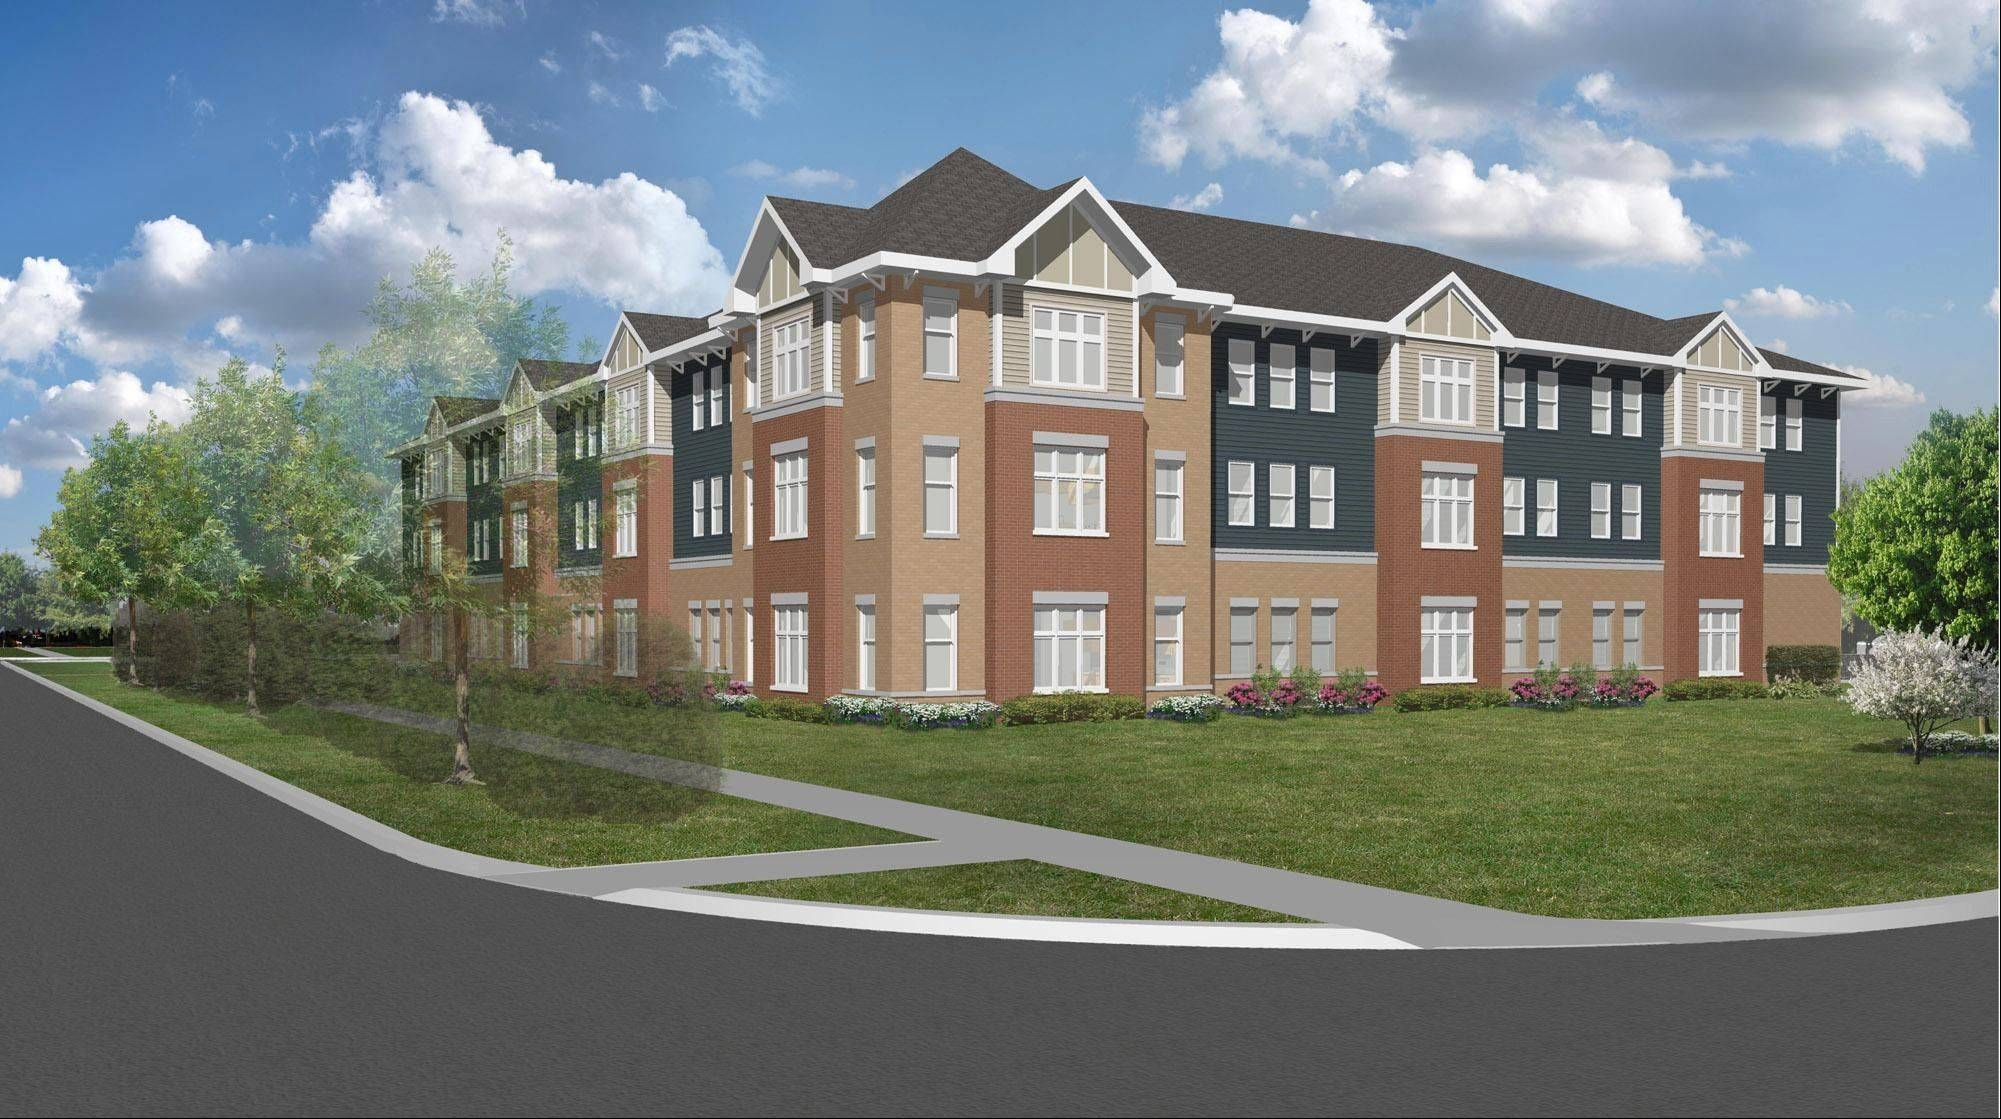 Rendering of Catherine Alice Gardens, a proposed facility in Palatine consisting of 33 leased apartments for people with disabilities.